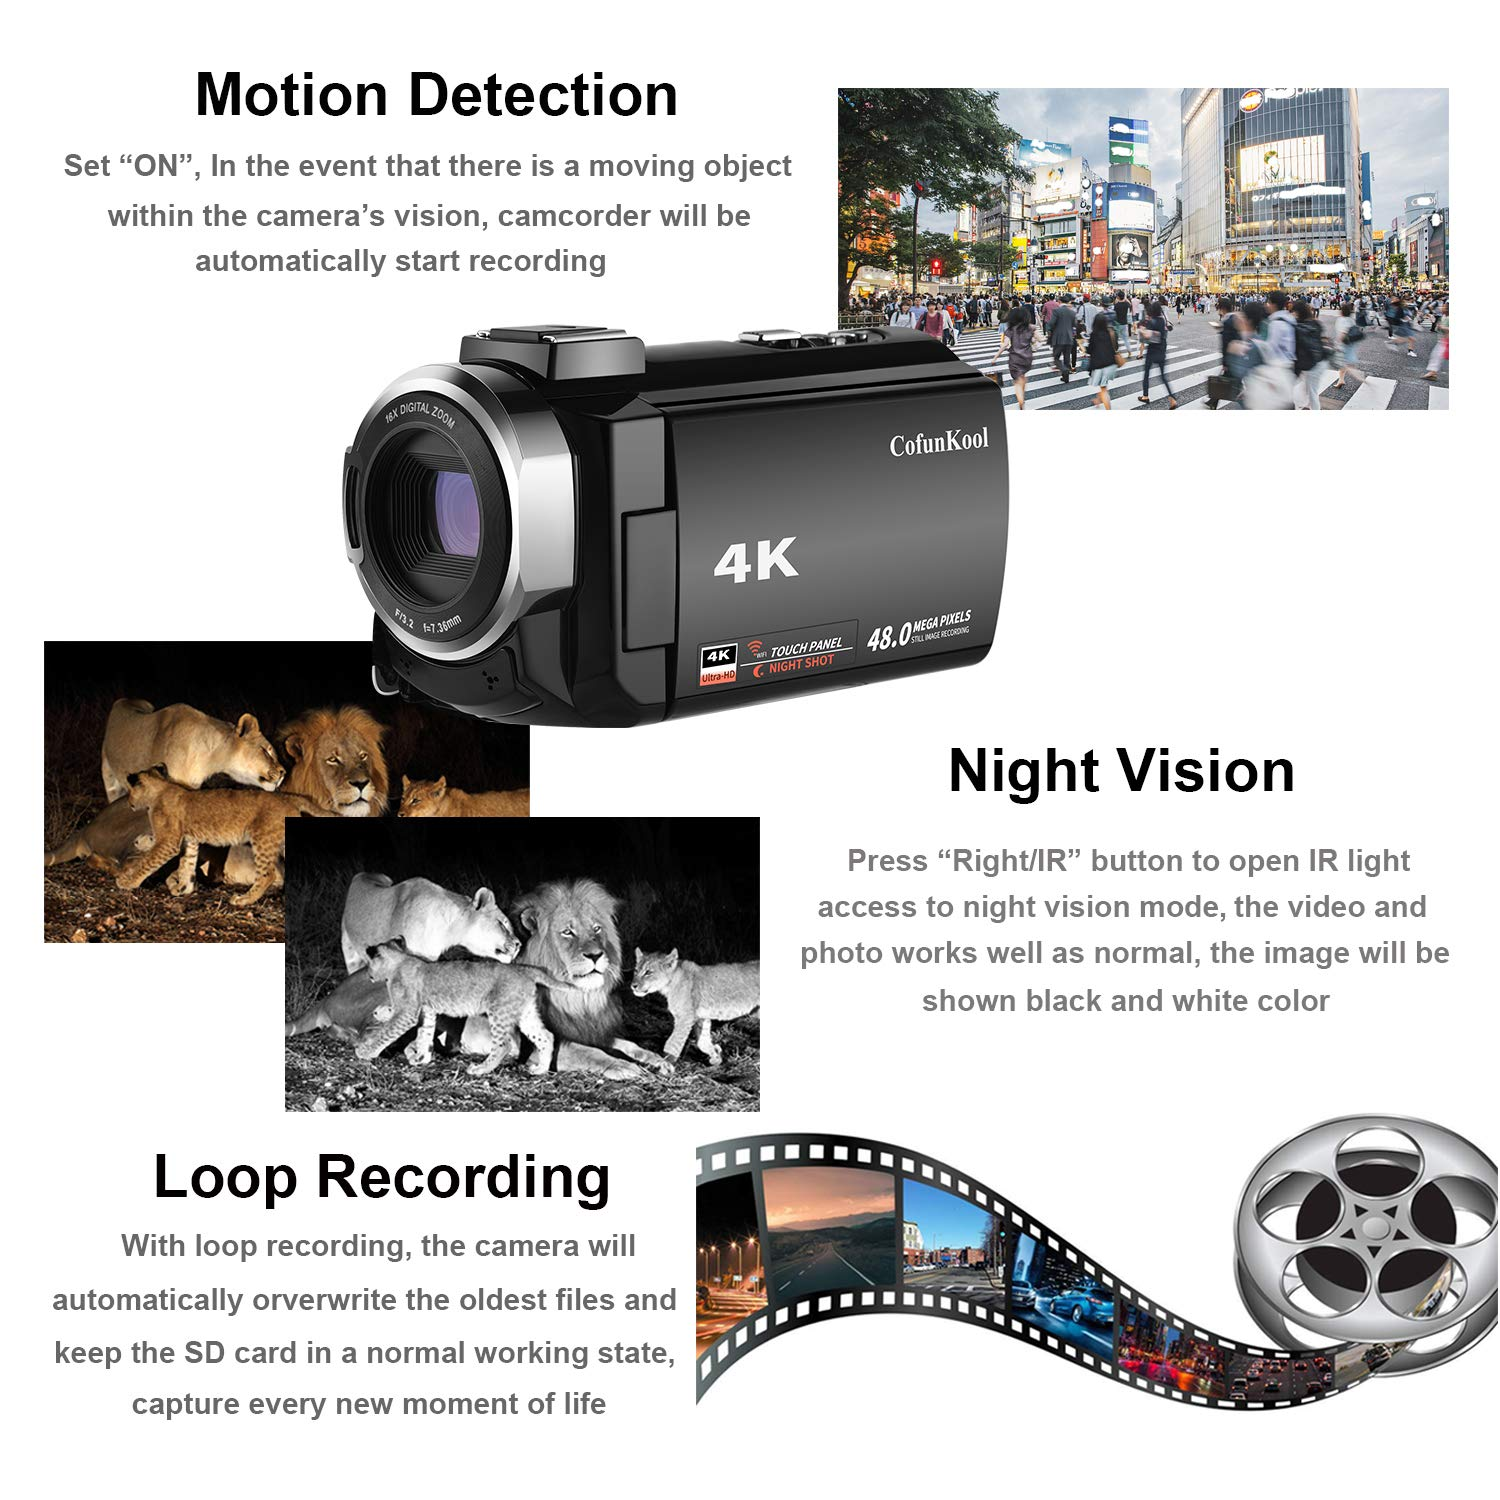 Cofunkool Wifi Camcorder 4k Night Vision Camera 48mp Working Of Digital Cameras 30 Ips Screen Video Recorder With Loop Recording Motion Detection Pause